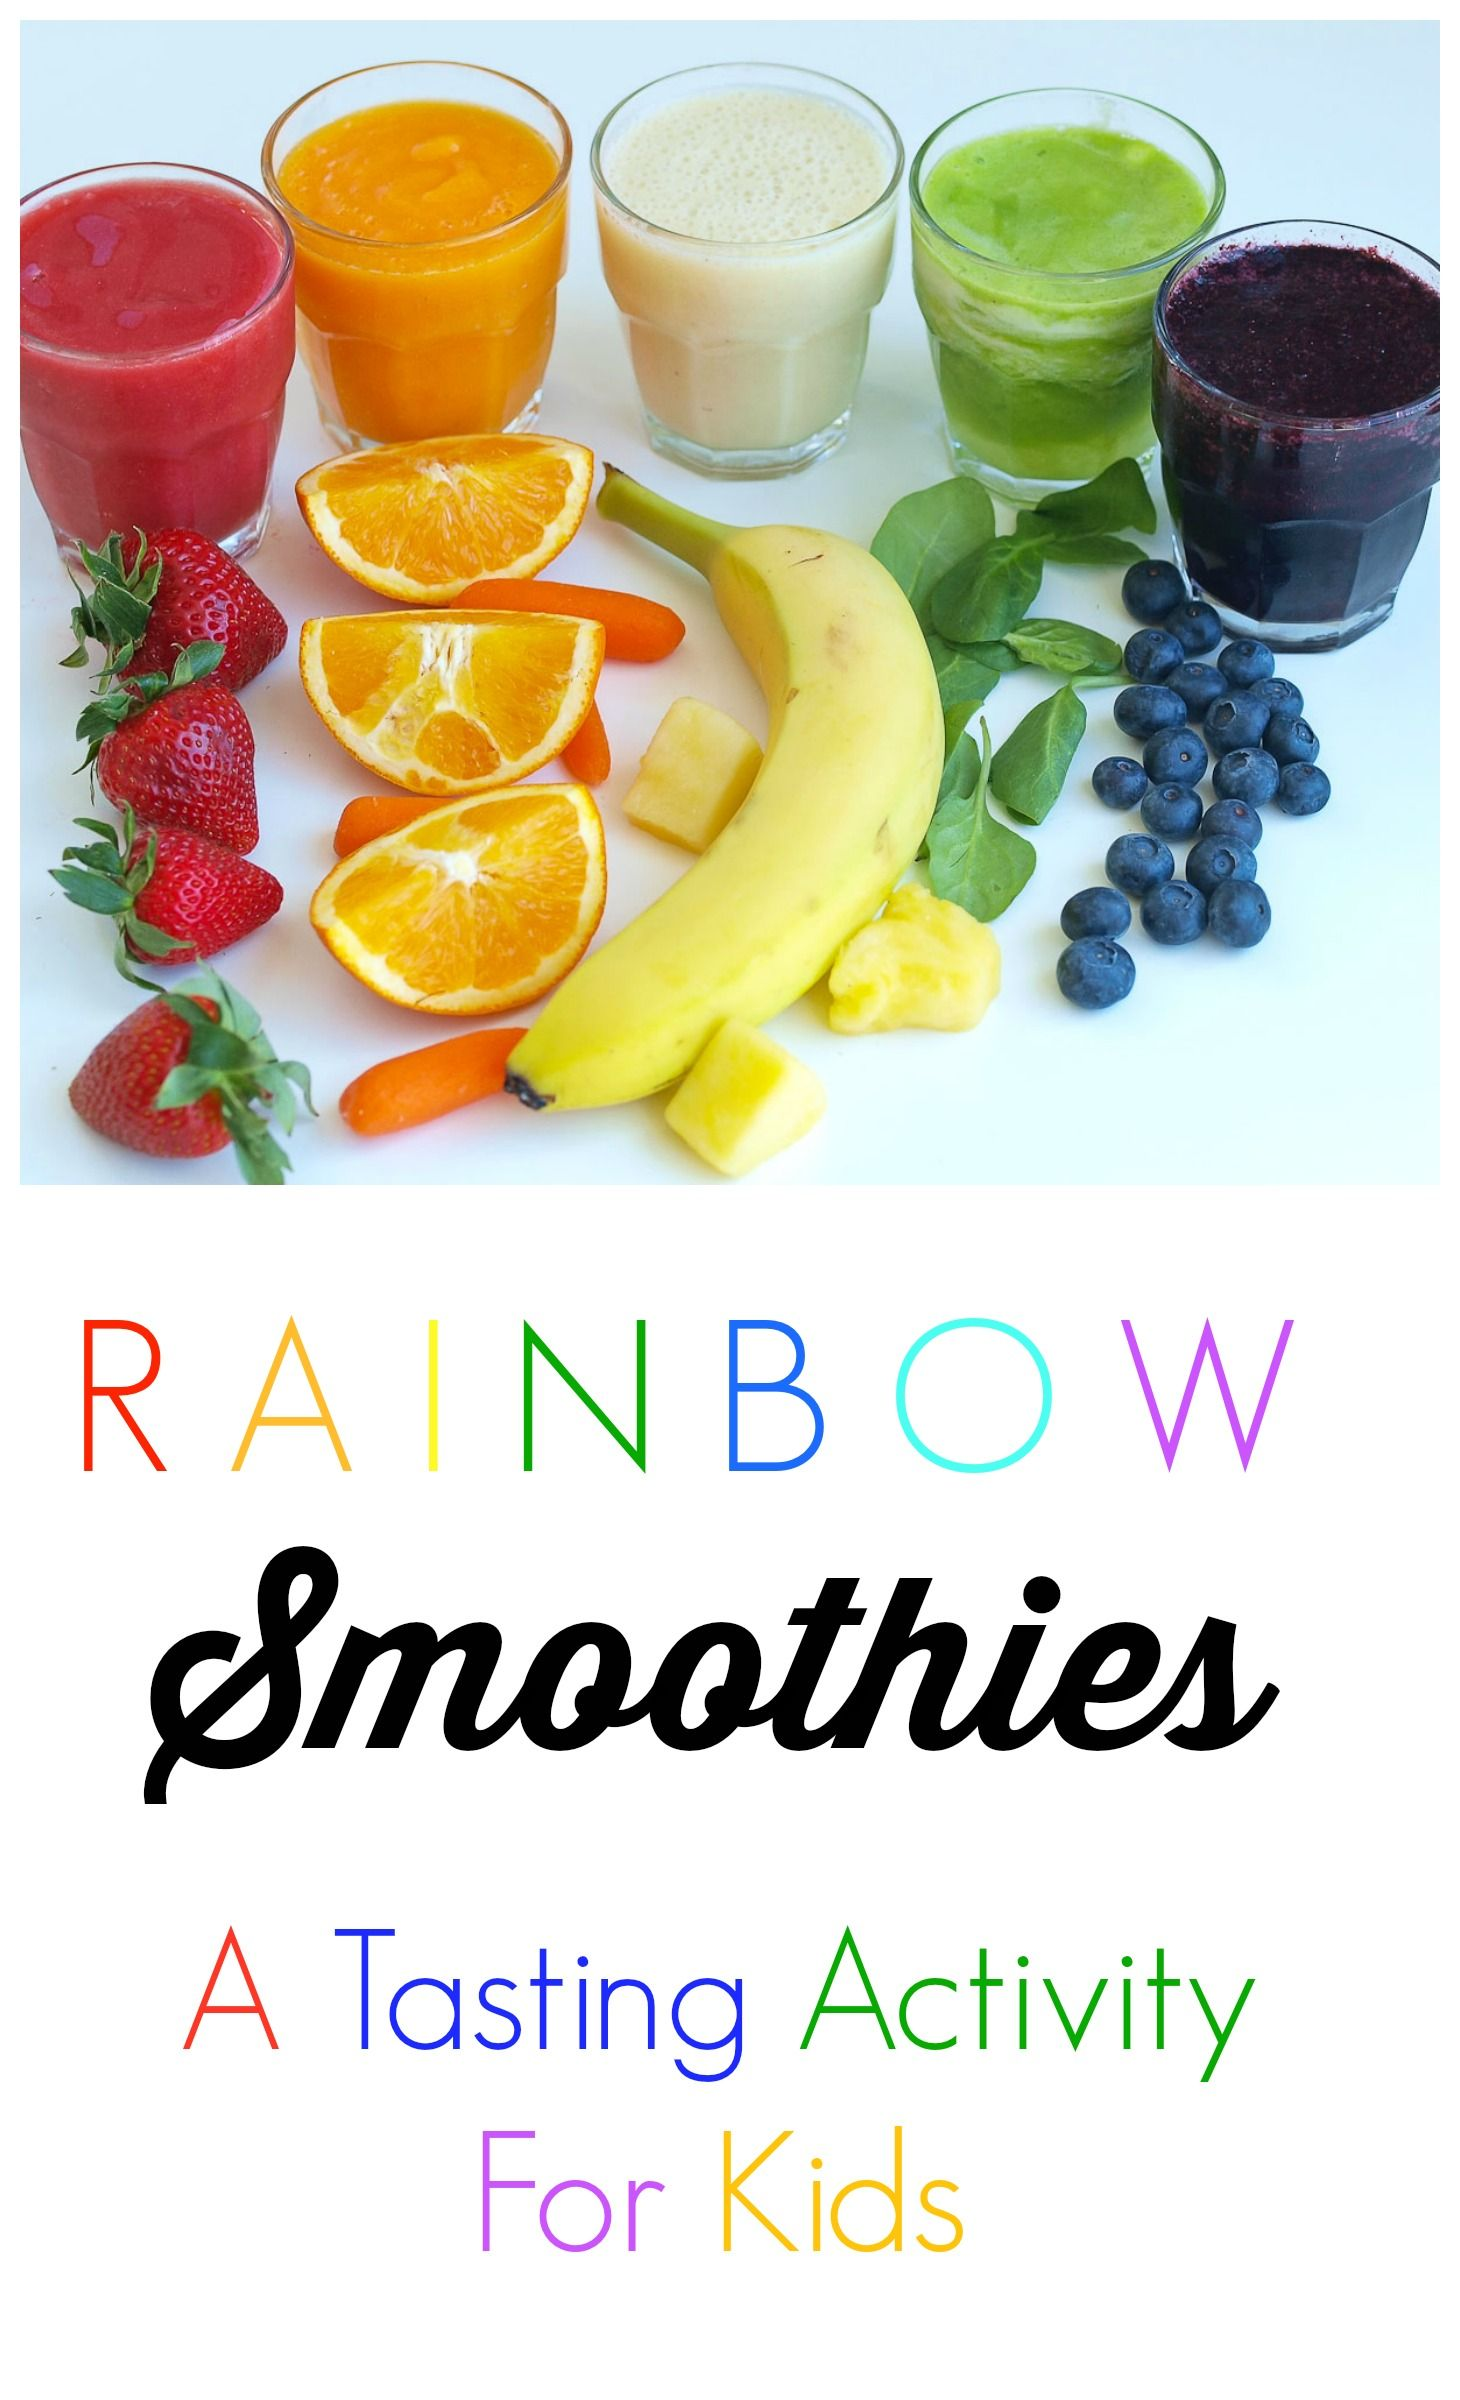 Rainbow Smoothies Recipes Teach Your Kids About Eating